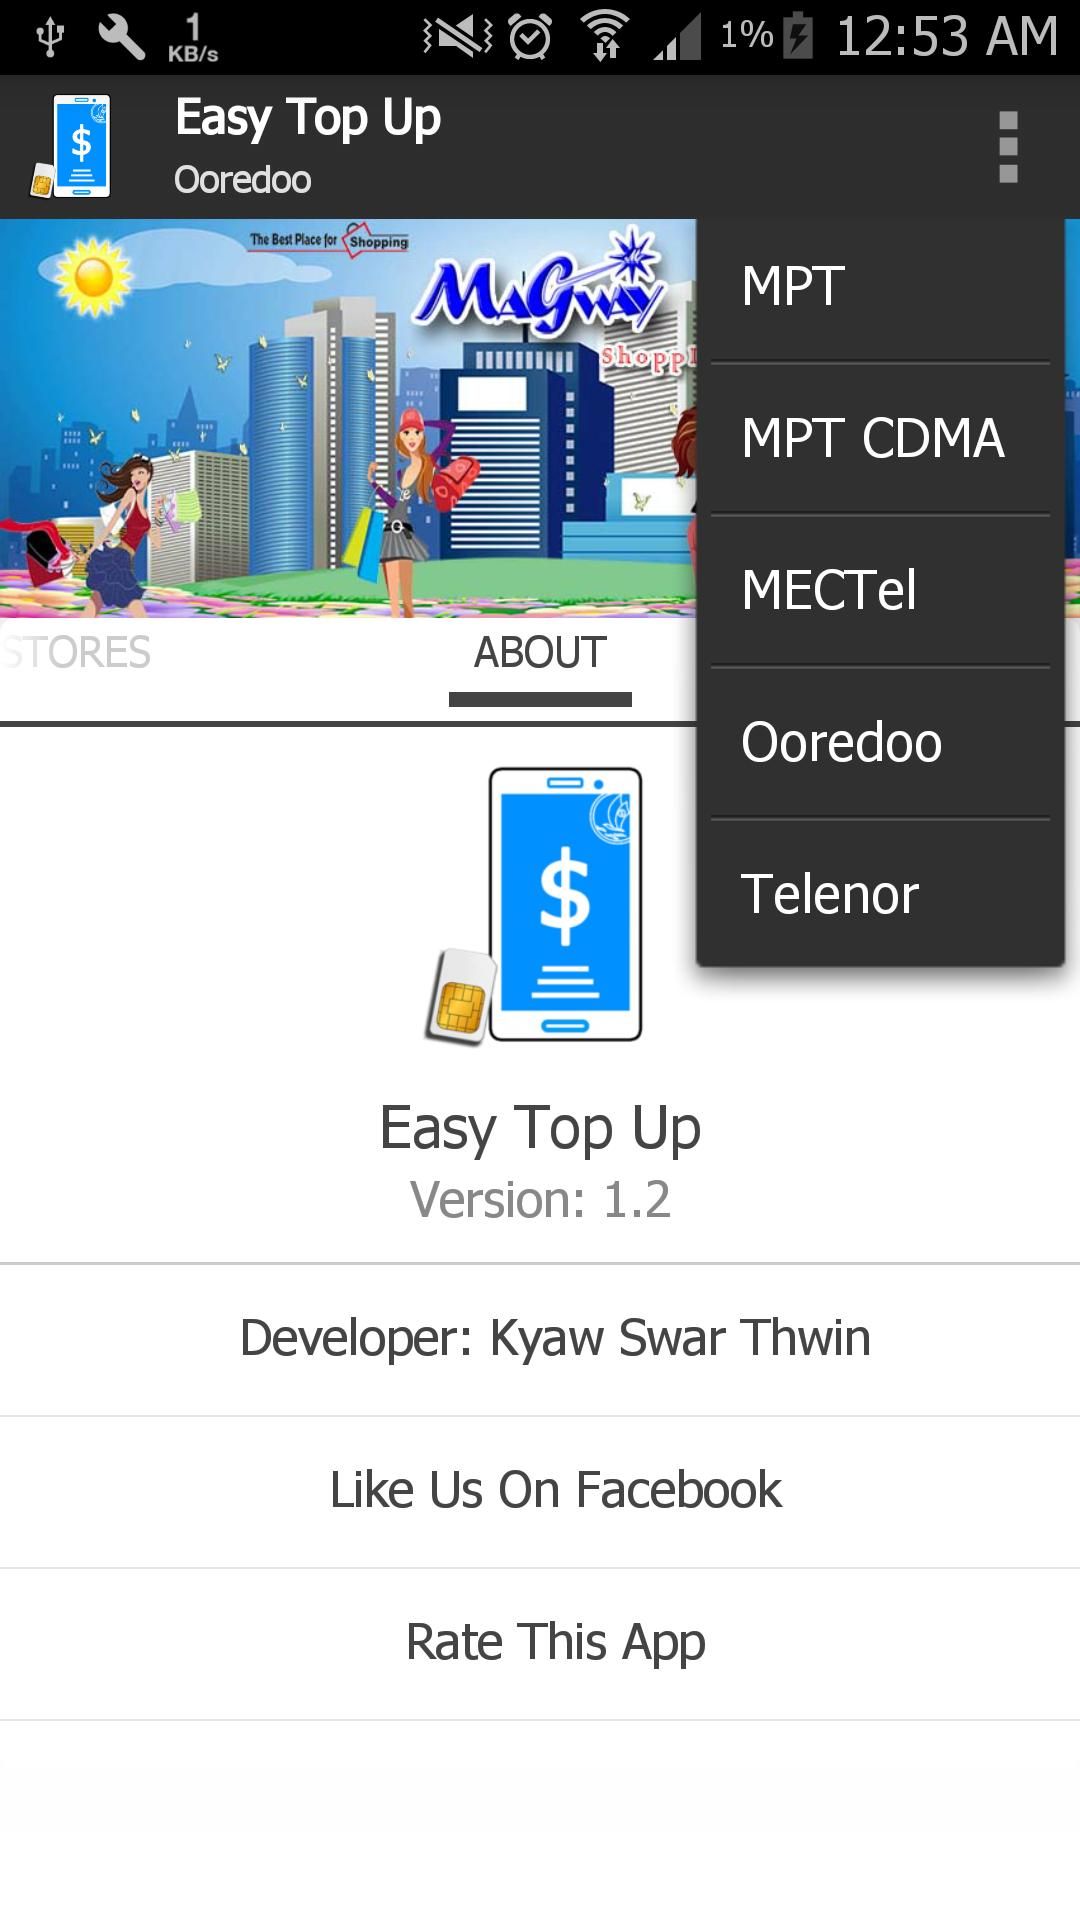 Easy Top Up for Android - APK Download